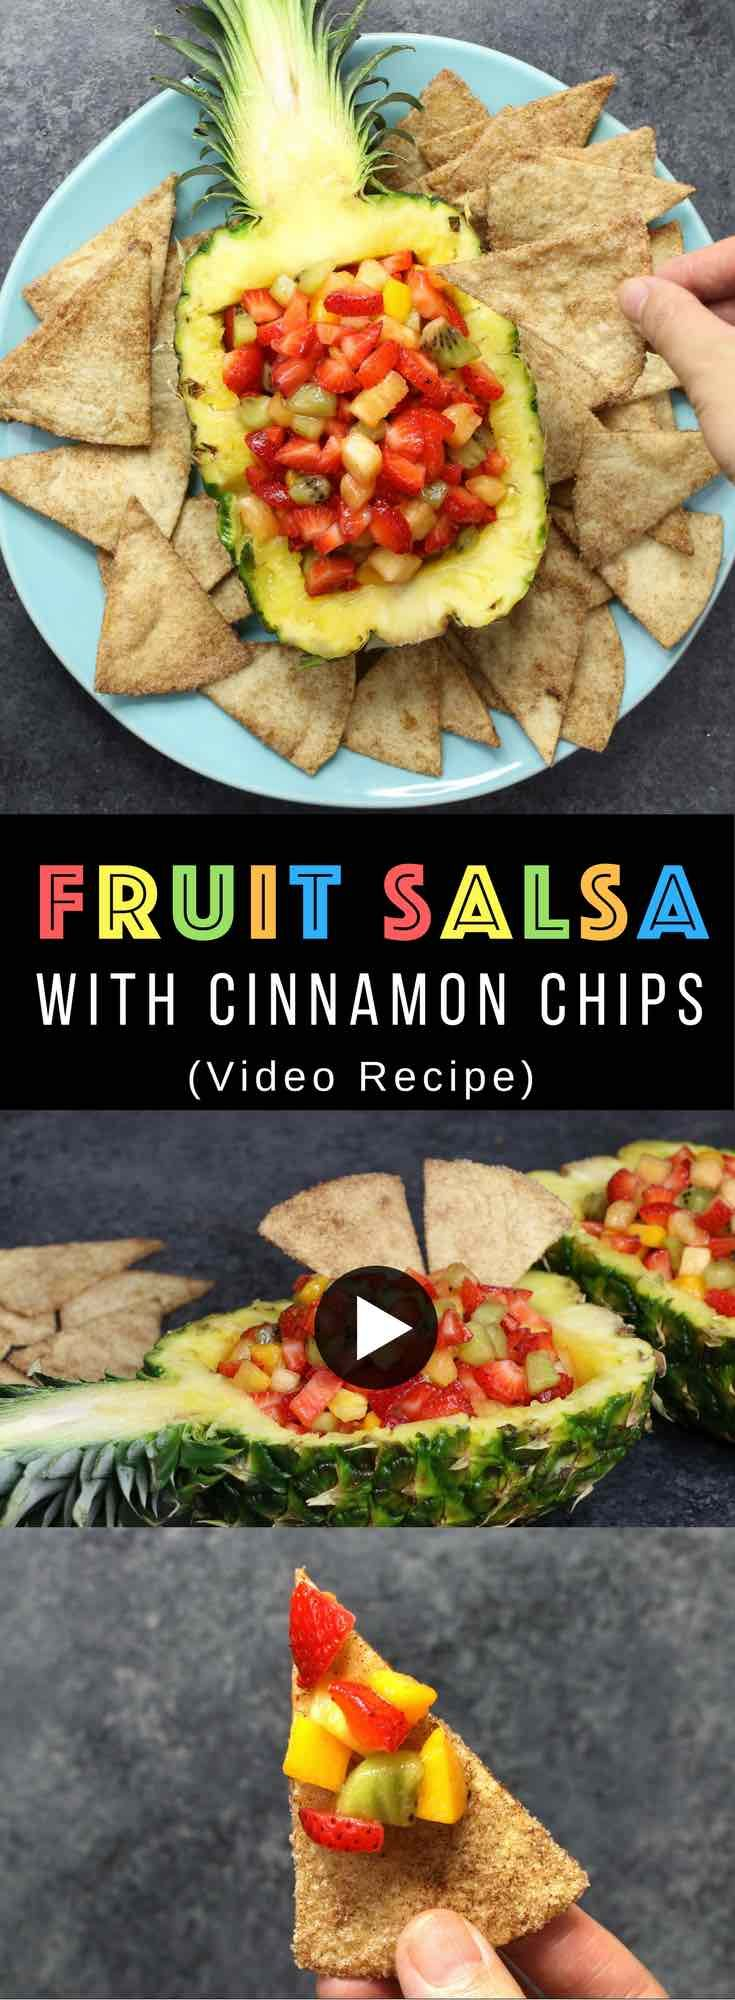 Super Easy Fruit Salsa With Cinnamon Tortilla Chips – delicious fruit salsa with crispy and sweet cinnamon chips. An easy dessert that comes together in no time. All you need is a few simple ingredients: Flour Tortillas, butter, cinnamon, sugar, pineapple, strawberries, kiwi, mango and lemon. It's the perfect way to serve fruits to a crowd! Quick and easy recipe. Great for party dessert and holiday brunch such as Easter, Mother's Day or Father's Day. Video recipe. | Tipbuzz.com